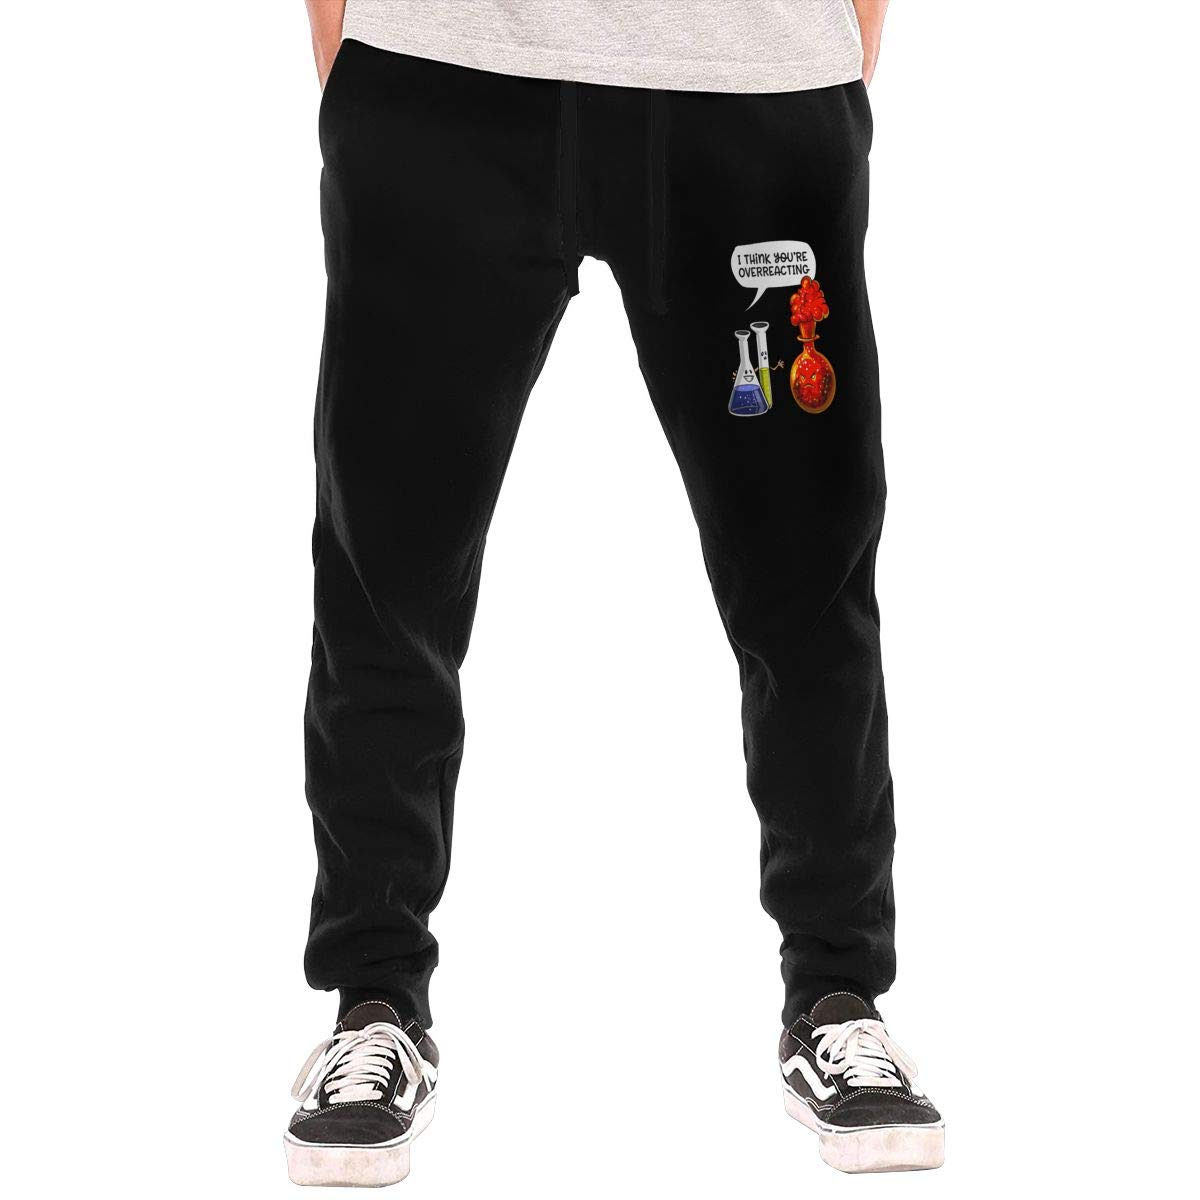 Sunshine Shop Youre Overreacting Mens Elastic Personality Pattern Casual Trousers